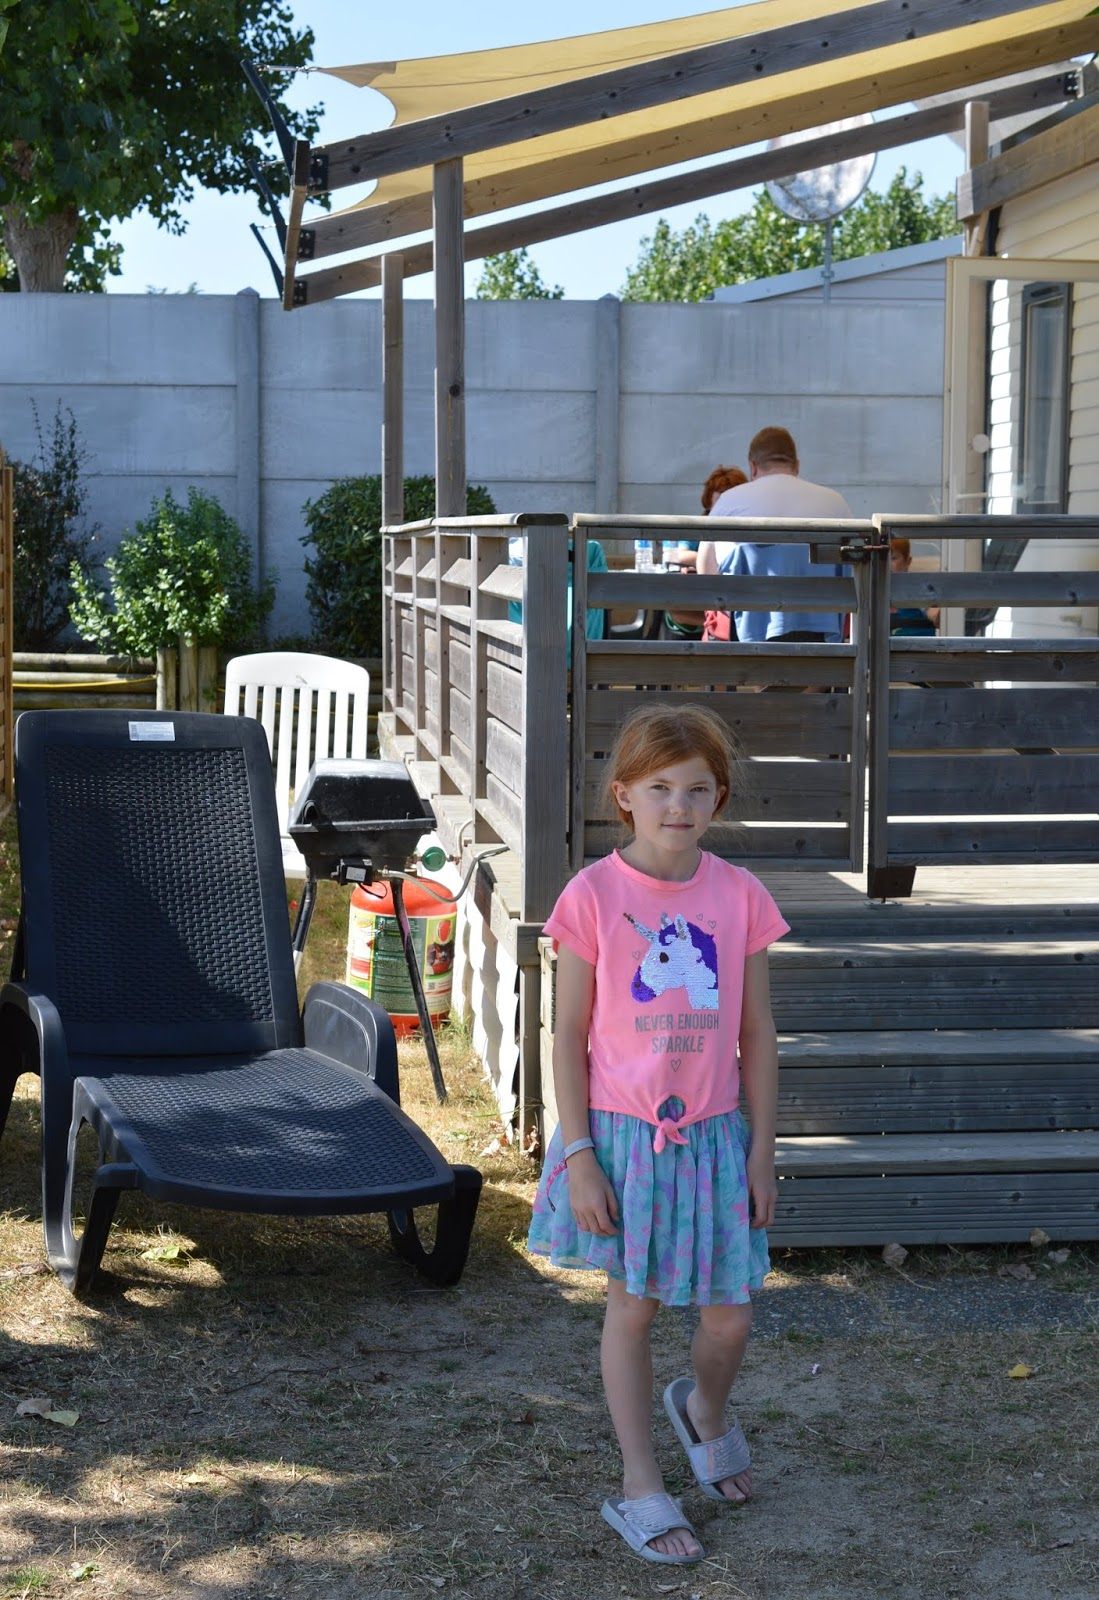 Les Ecureuils Campsite, Vendee - A Eurocamp Site near Puy du Fou (Full Review) - avant lodge outside